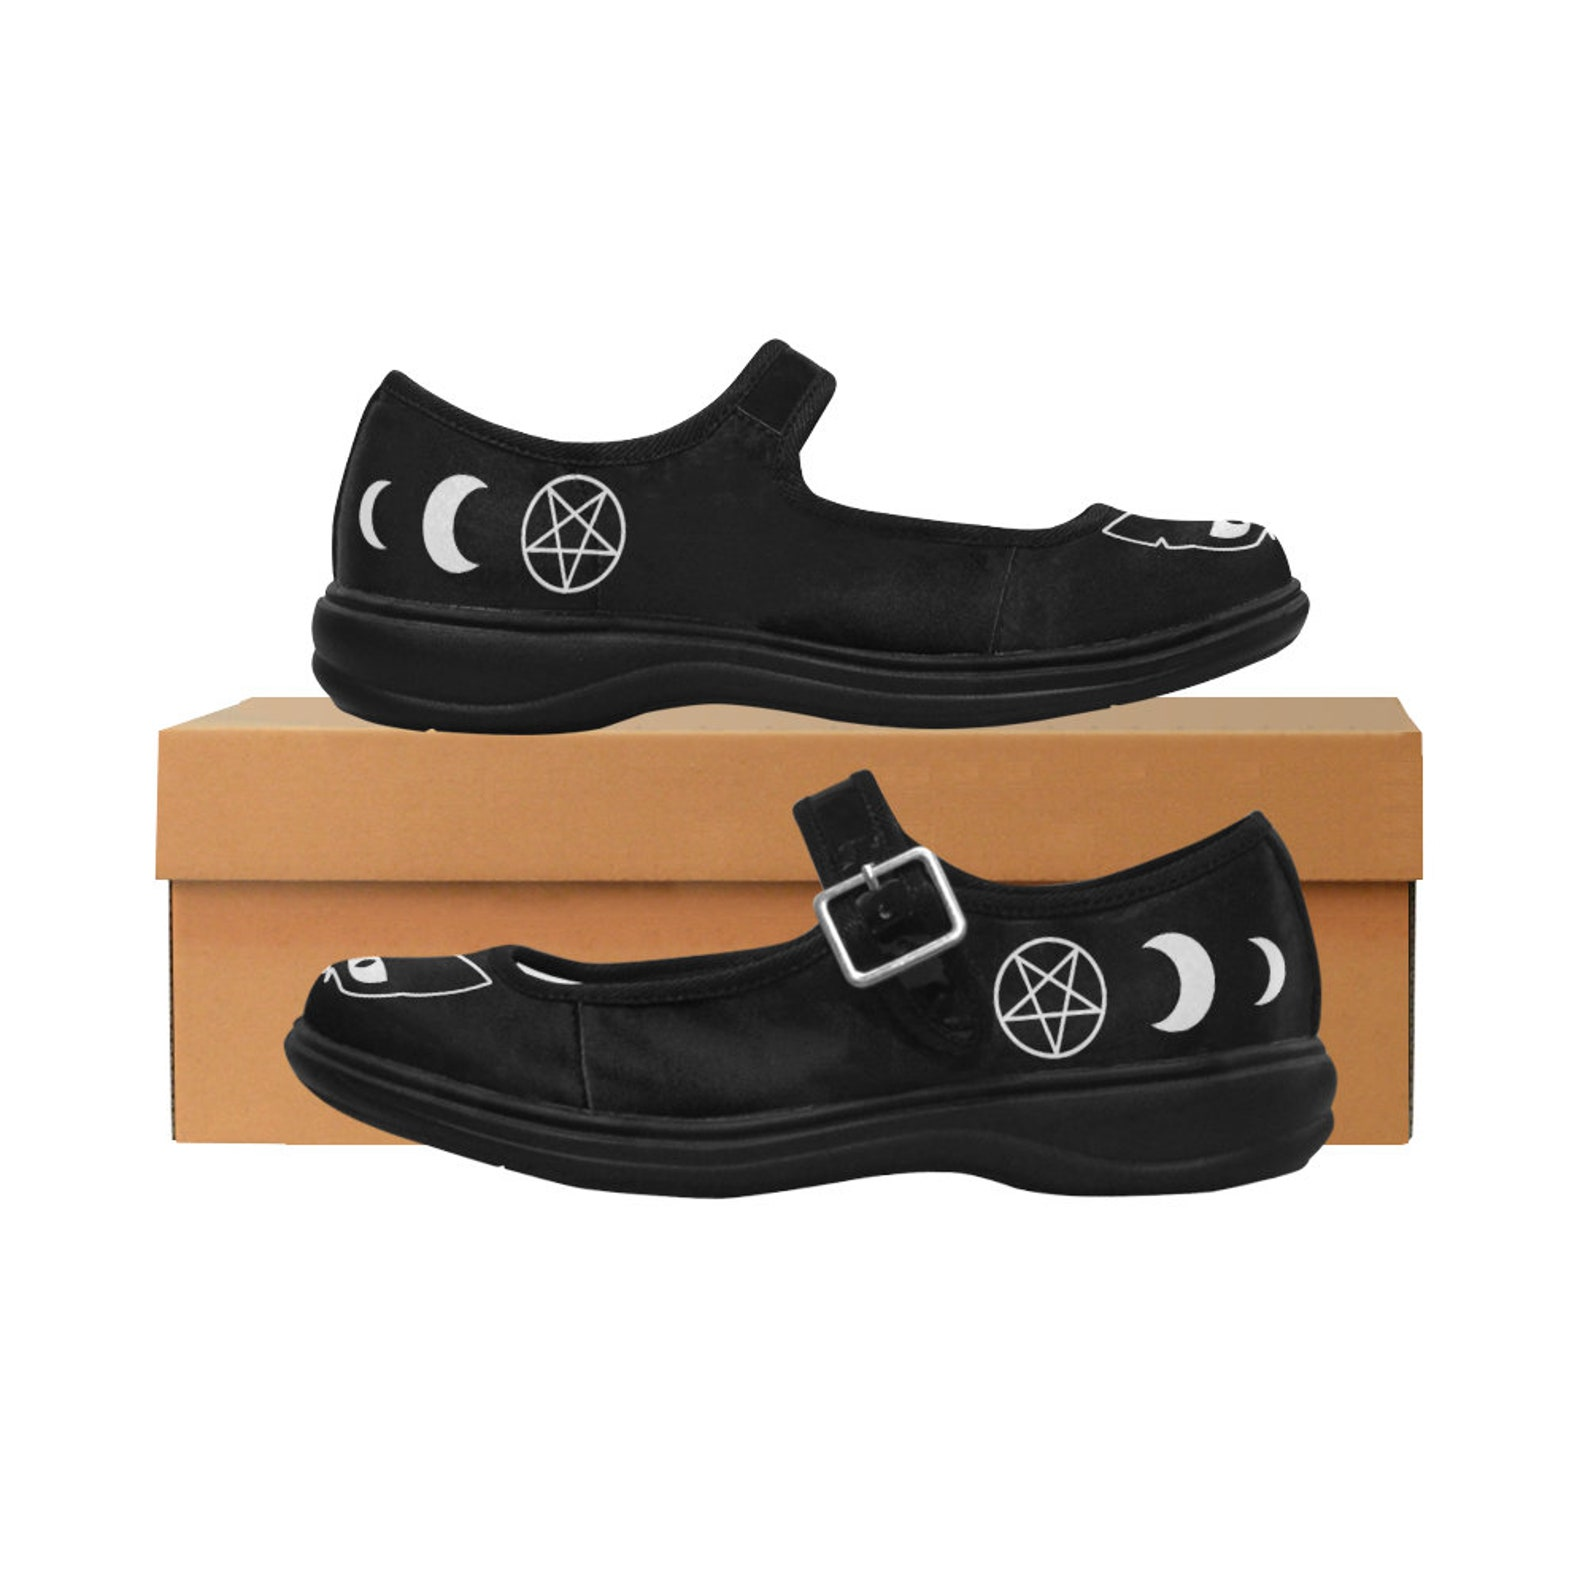 black cat - pagan clothing - occult clothing - witch clothing - witchcraft - ballet shoes